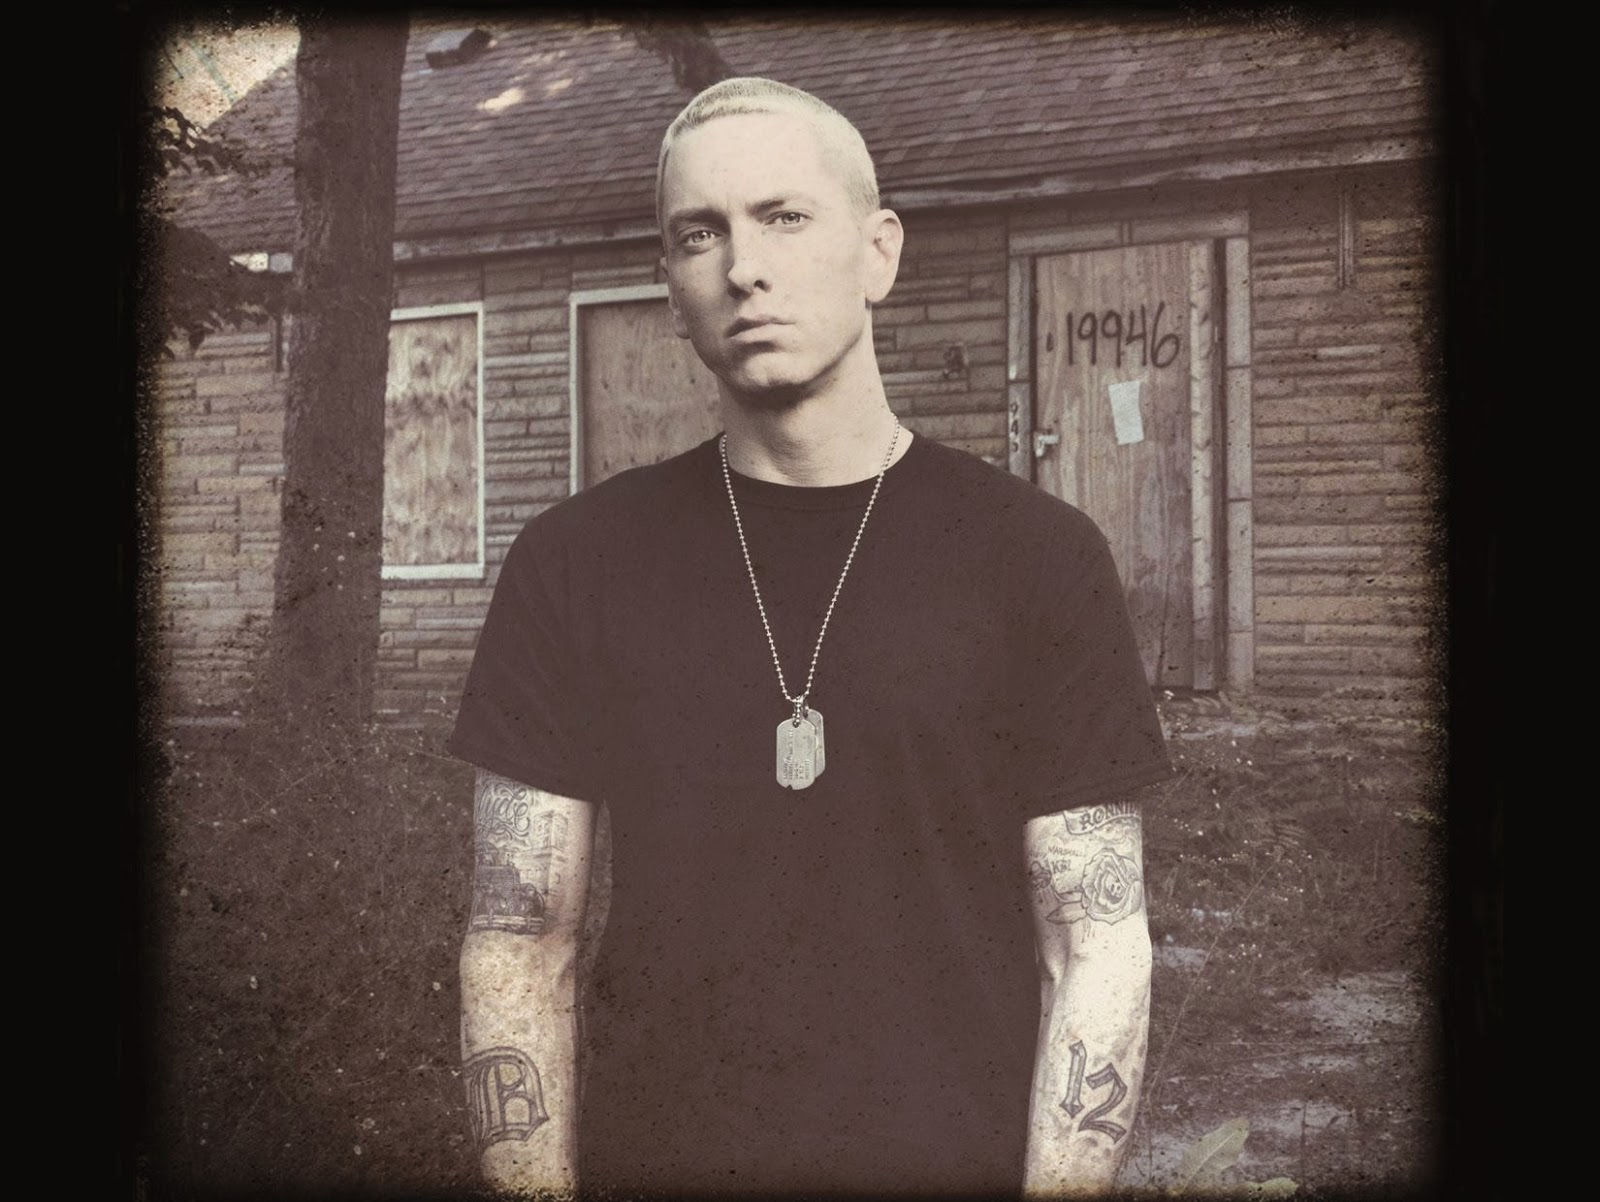 Буклет альбома Eminem The Marshall Mathers LP 2 - 12